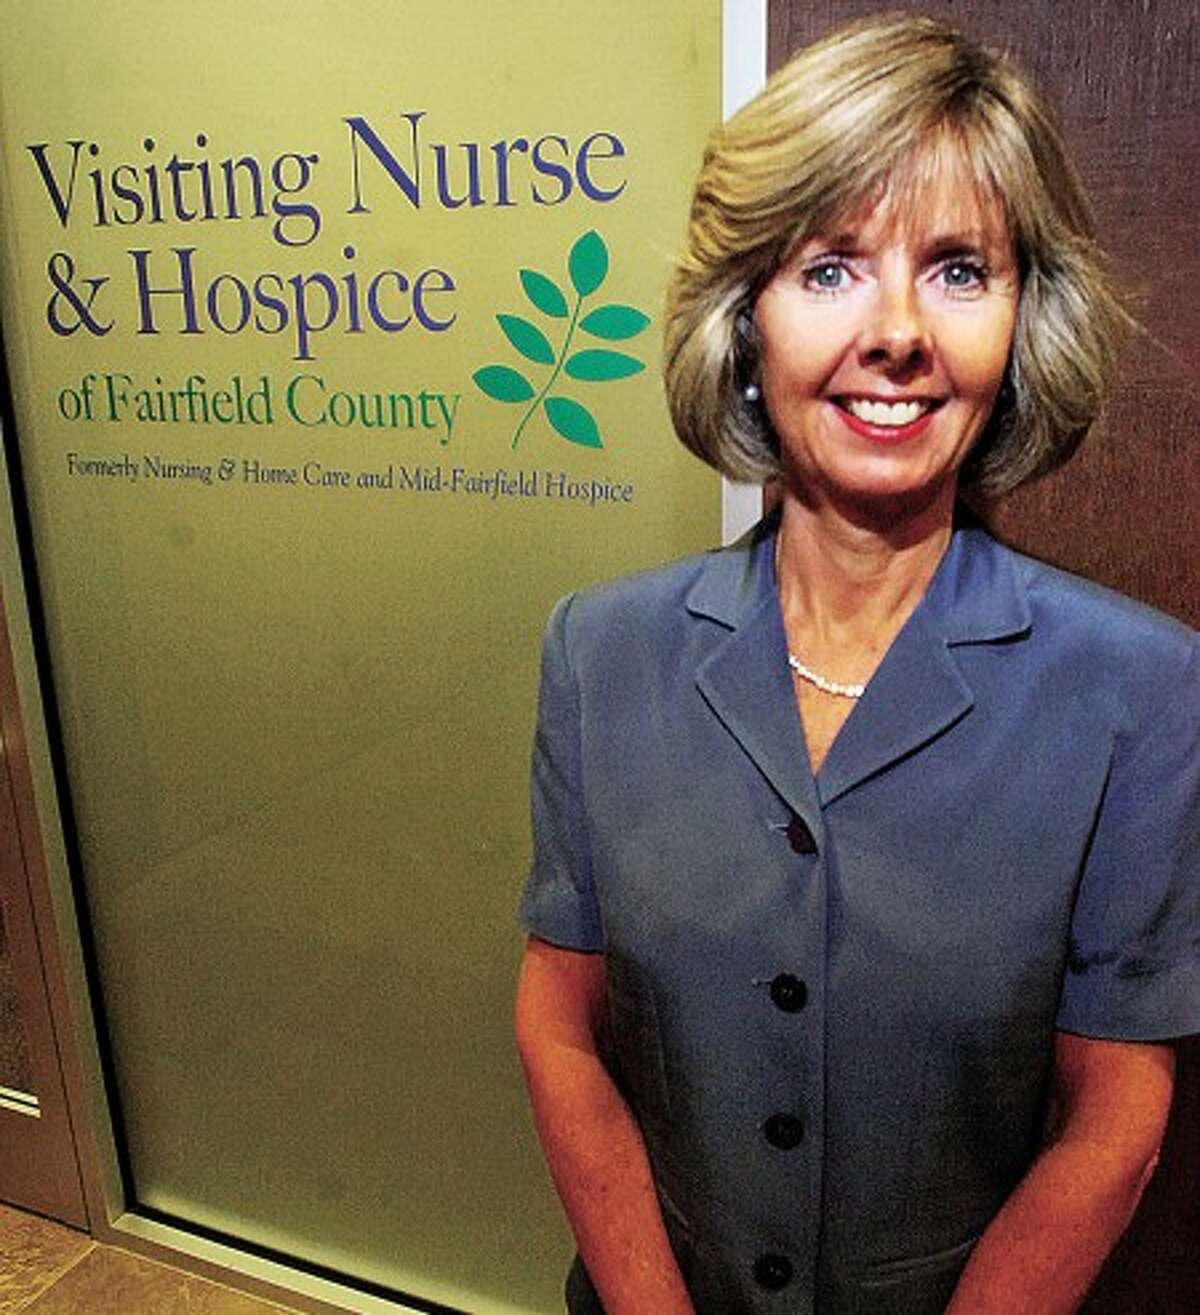 Sharon Bradley, CEO of Visiting Nurse & Hospice of Fairfield County. After working closley together for years Nursing & Home Care and Mid-Fairfield Hospice have recently merged into a single entity now called Visiting Nurse & Hospice of Fairfield County. Hour photo / Erik Trautmann